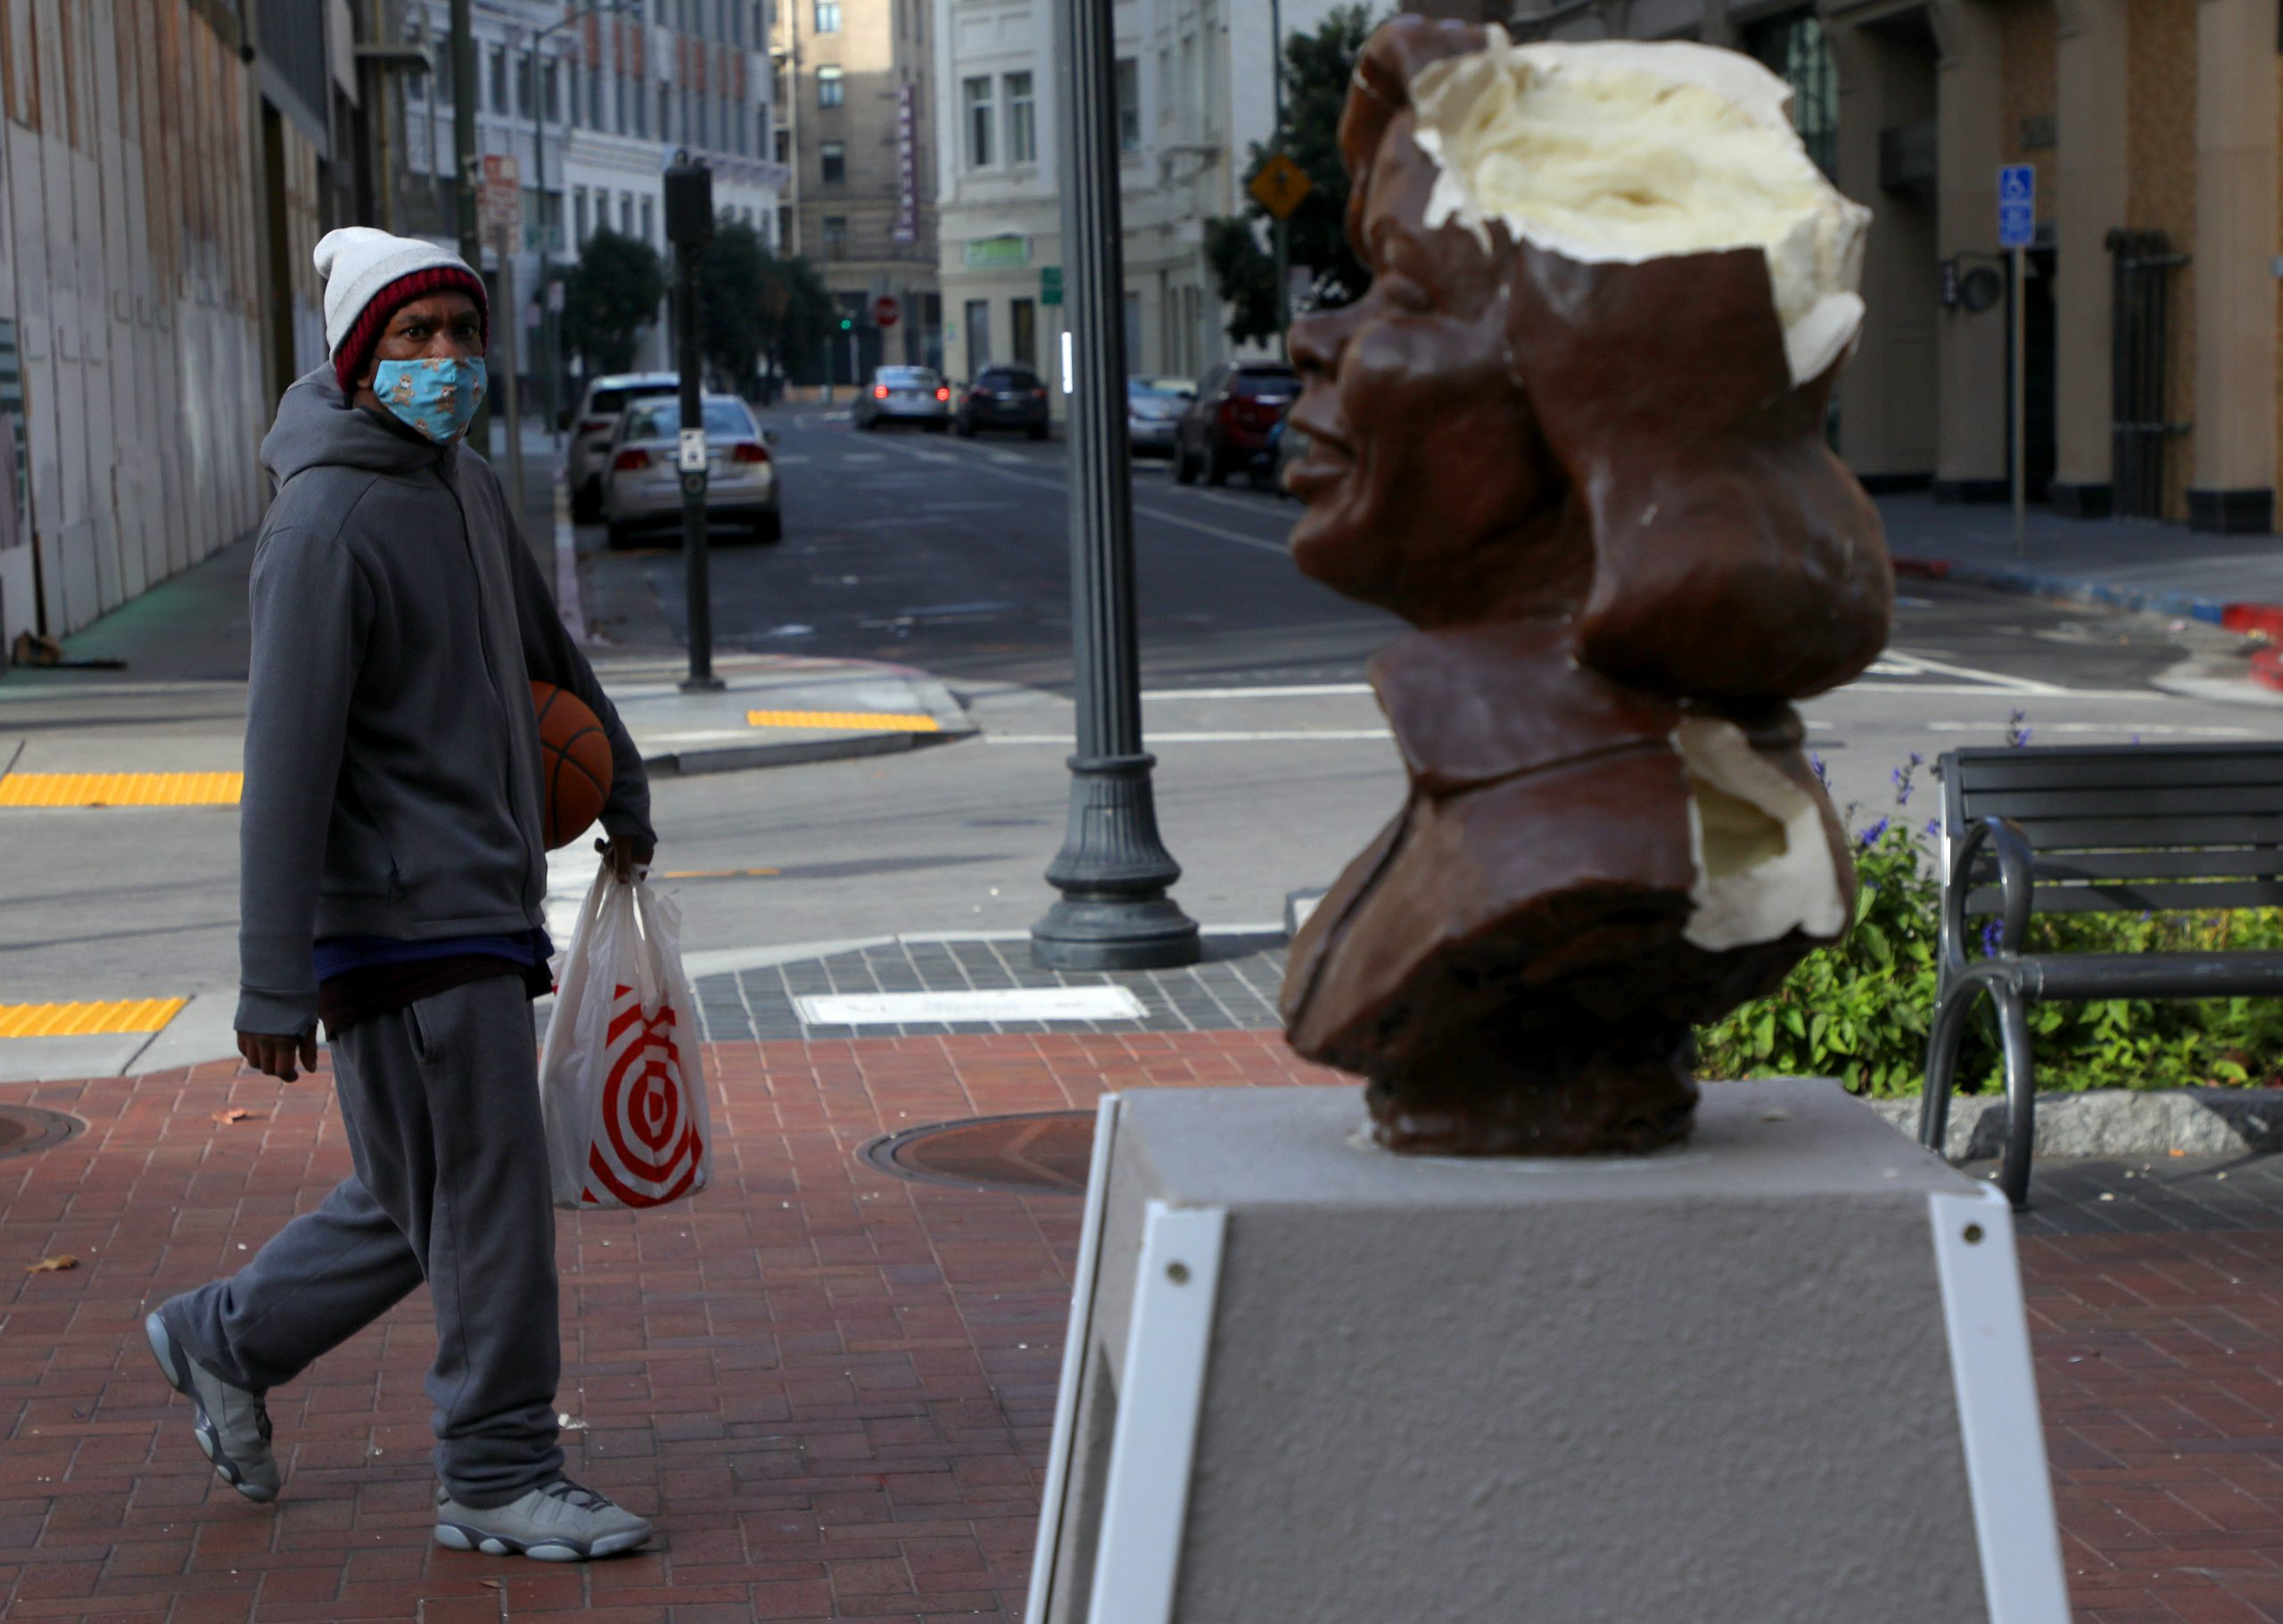 Oakland: Sculpture honoring Breonna Taylor smashed to pieces downtown